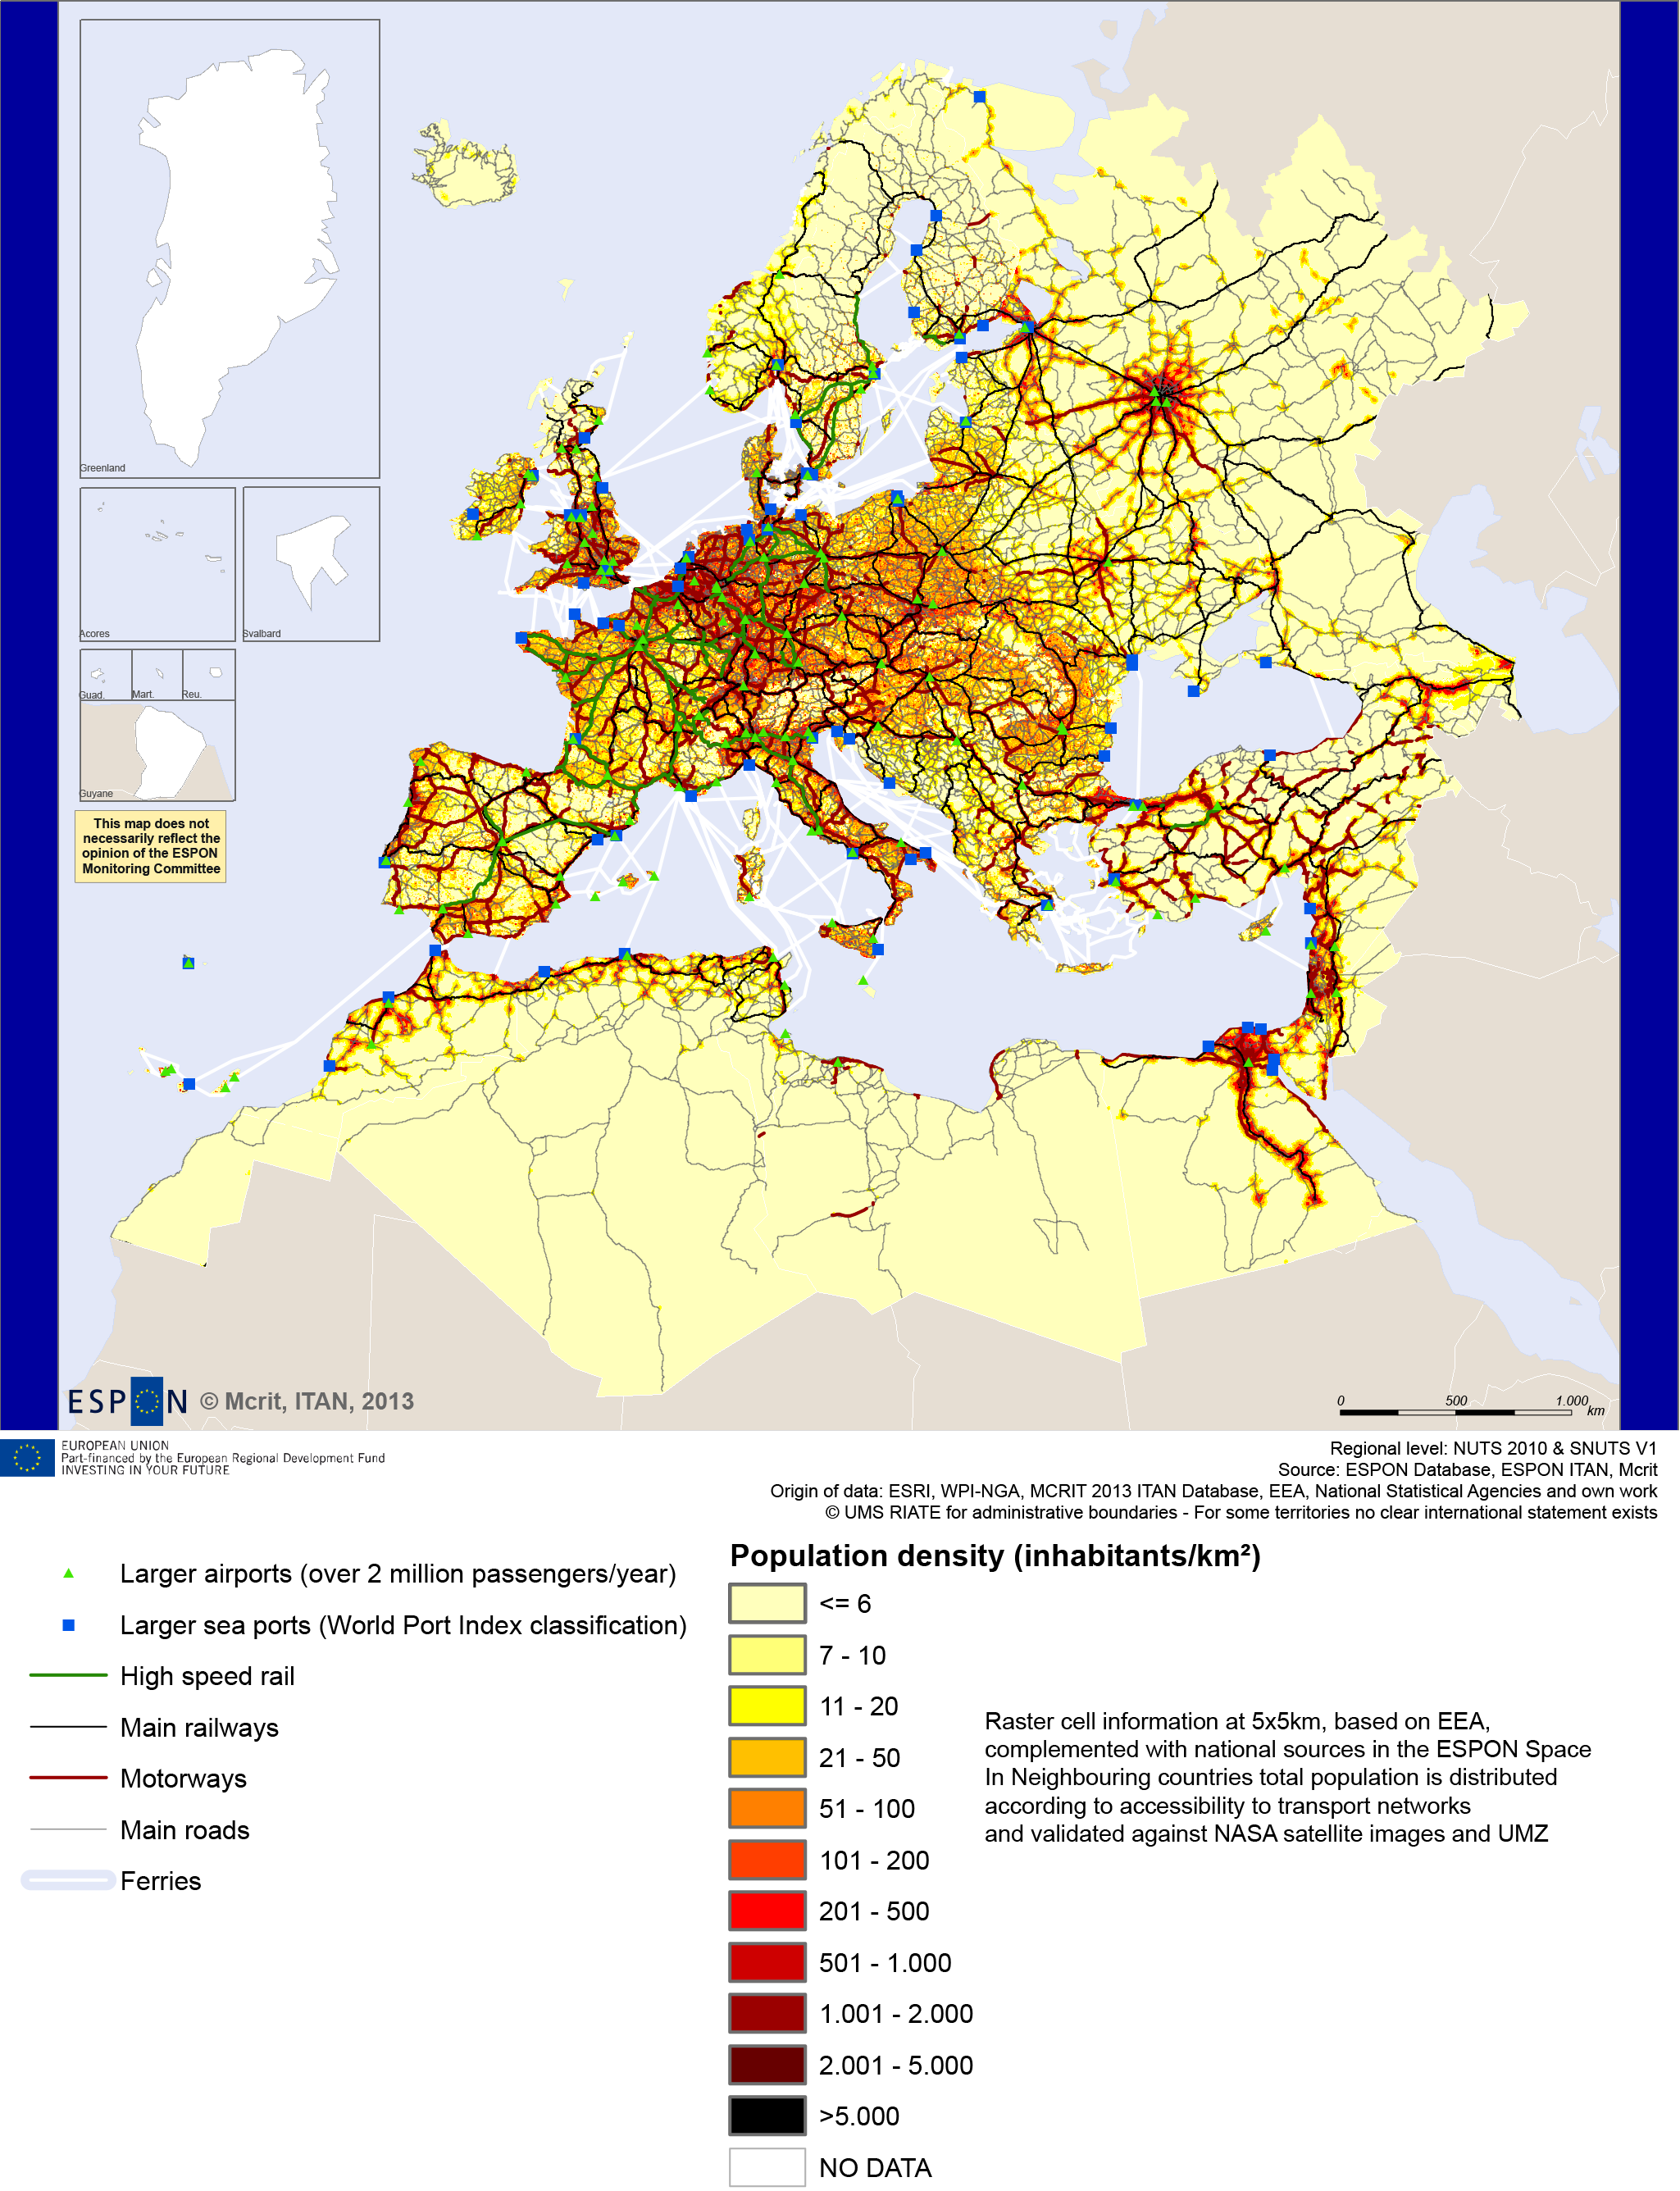 Map 1 - Demographic density and main transport network in the wider European region, ca 2010